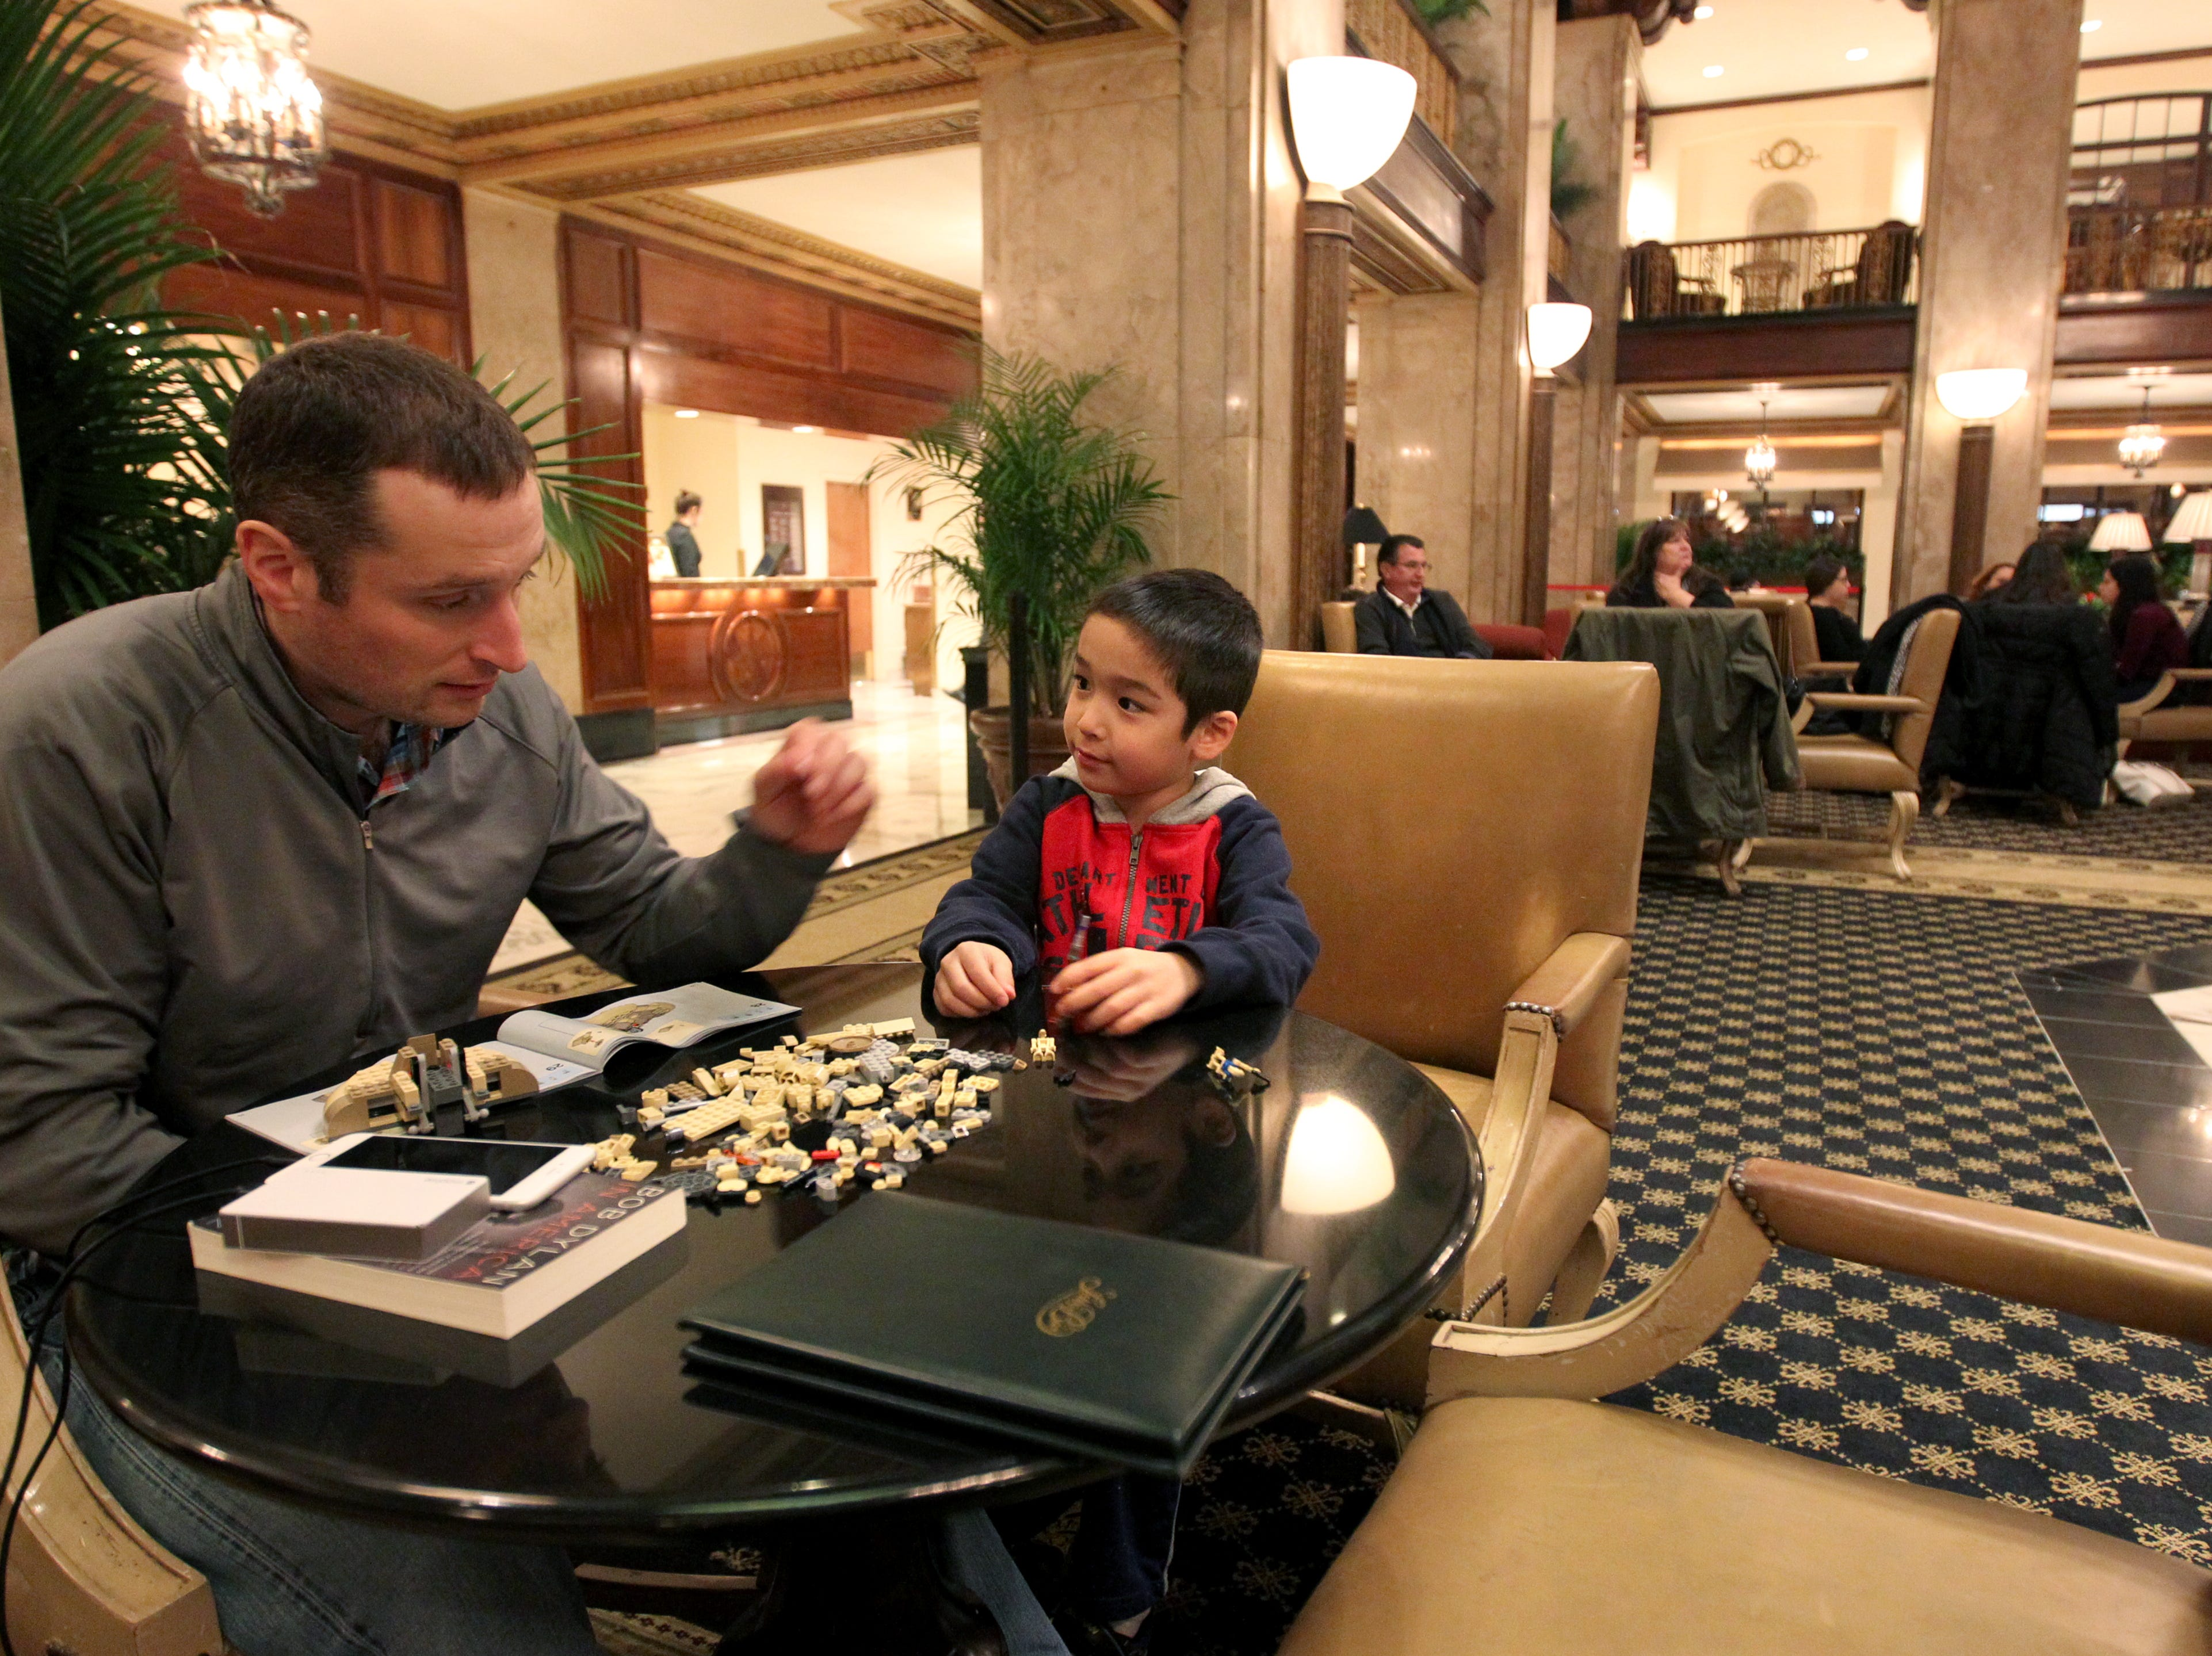 Hotel guests Matt Frantzen entertains his son, Henry Frantzen, 6, with Legos in the lobby at the Peabody Hotel during their stay in Memphis on Feb. 16, 2015. Memphis area hotels had the highest occupancy rate in more the 25 years in 2014.